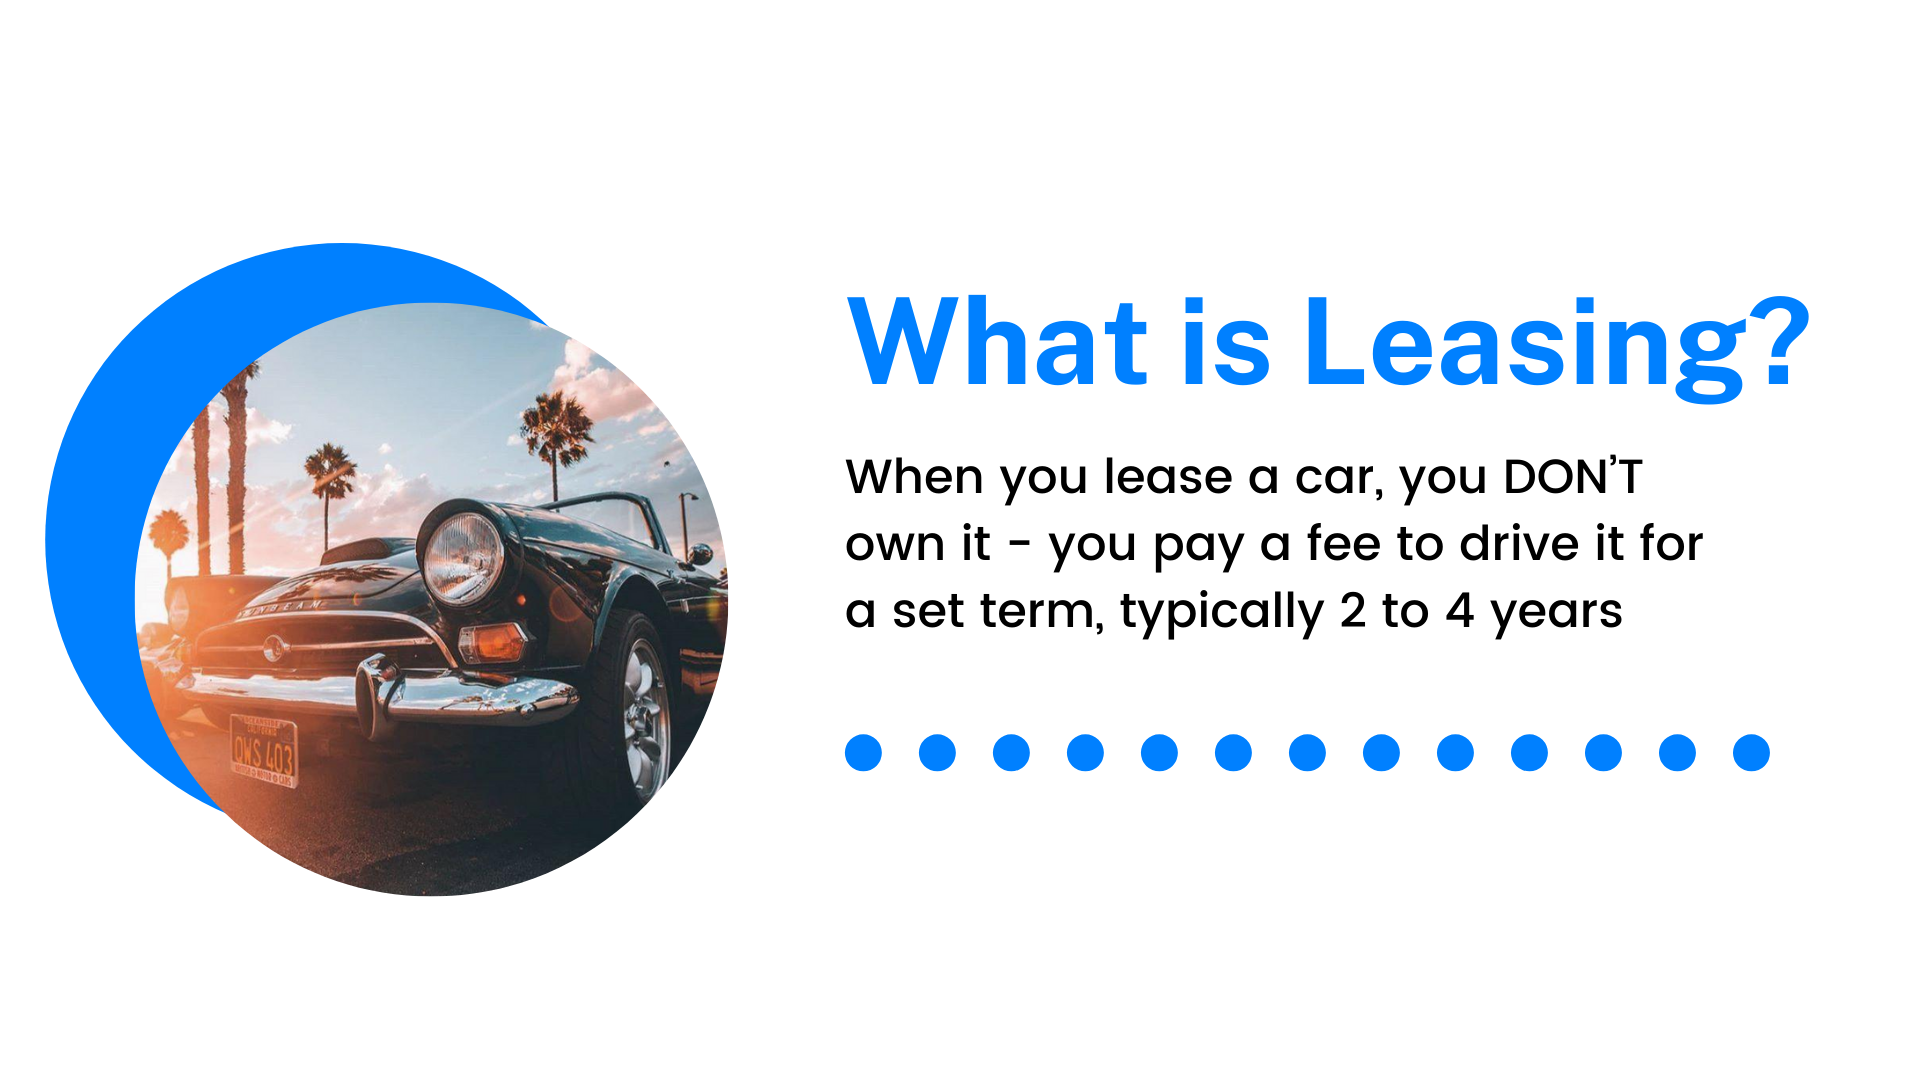 When you lease a car, you DON'T own it - you pay a fee to drive it for a set term, typically 2 to 4 years